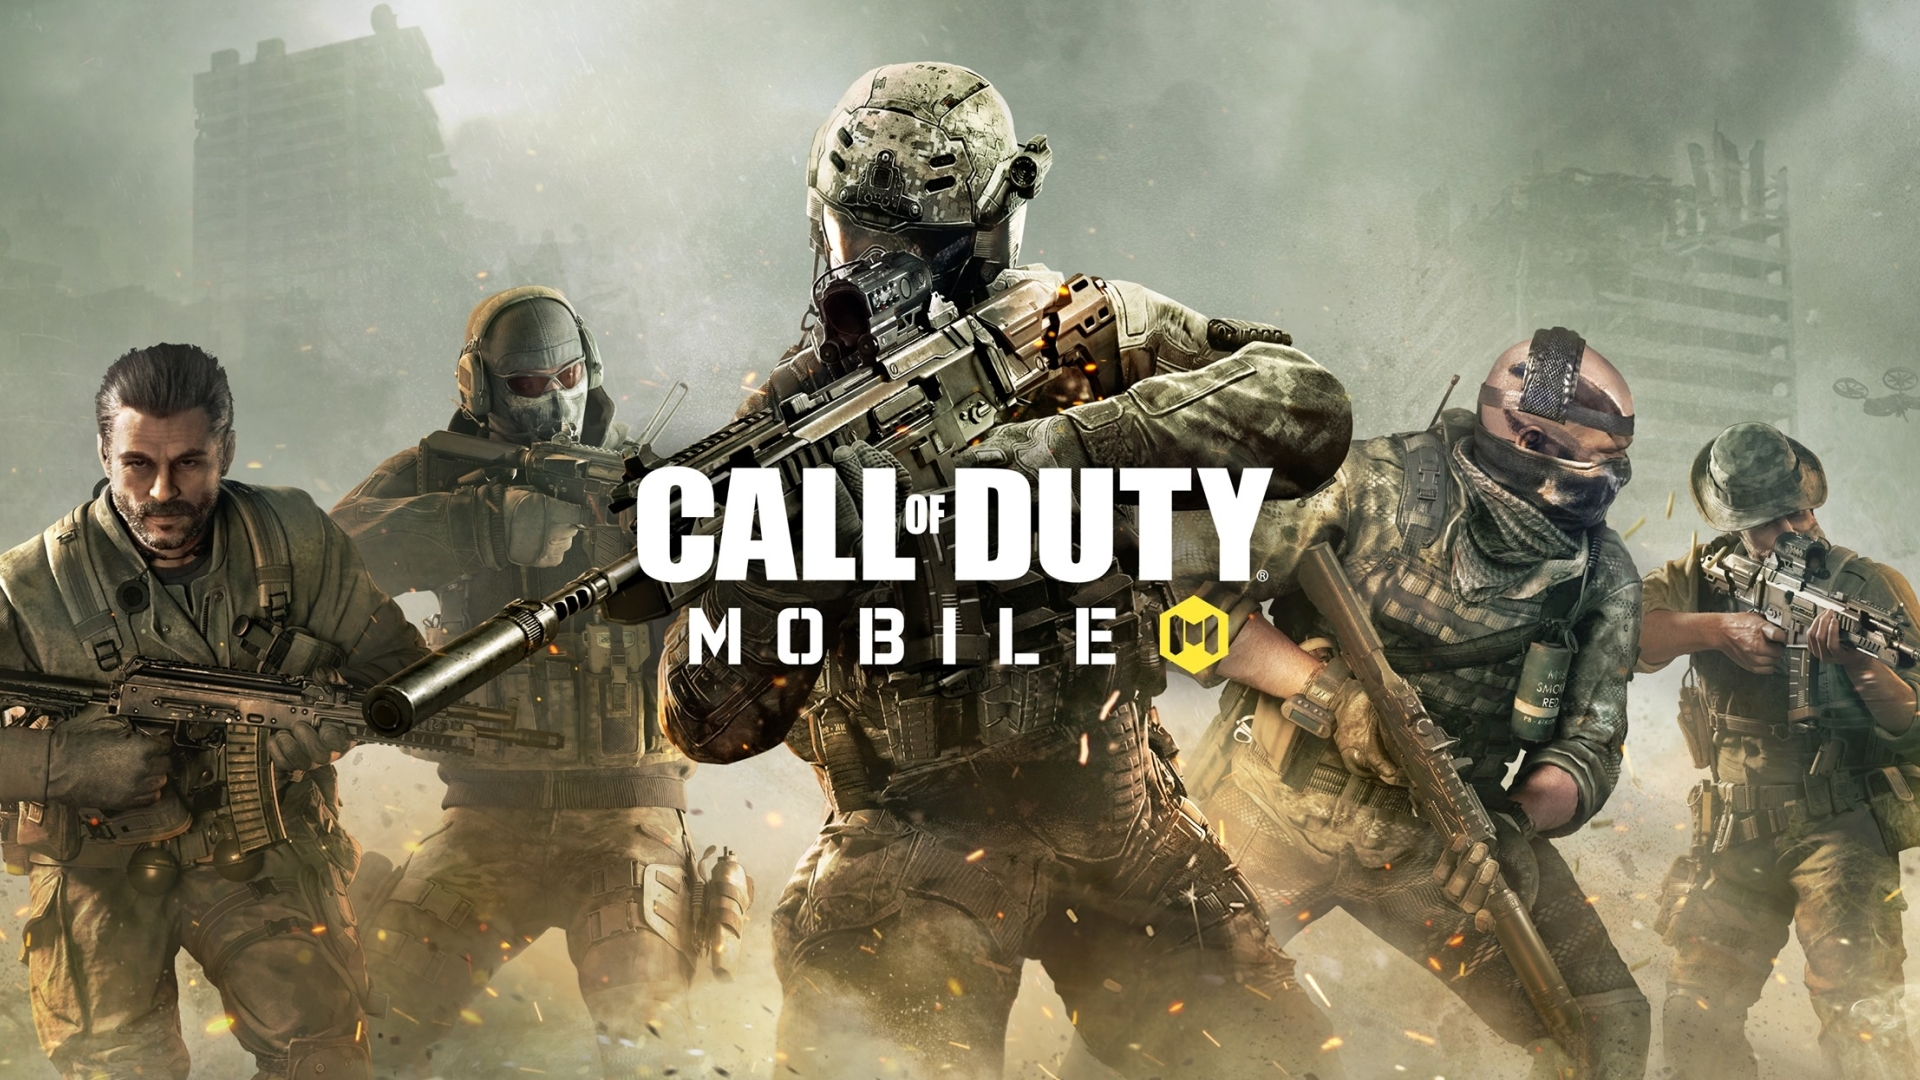 1920x1080 Call Of Duty Mobile Game 1080P Laptop Full HD Wallpaper 1920x1080